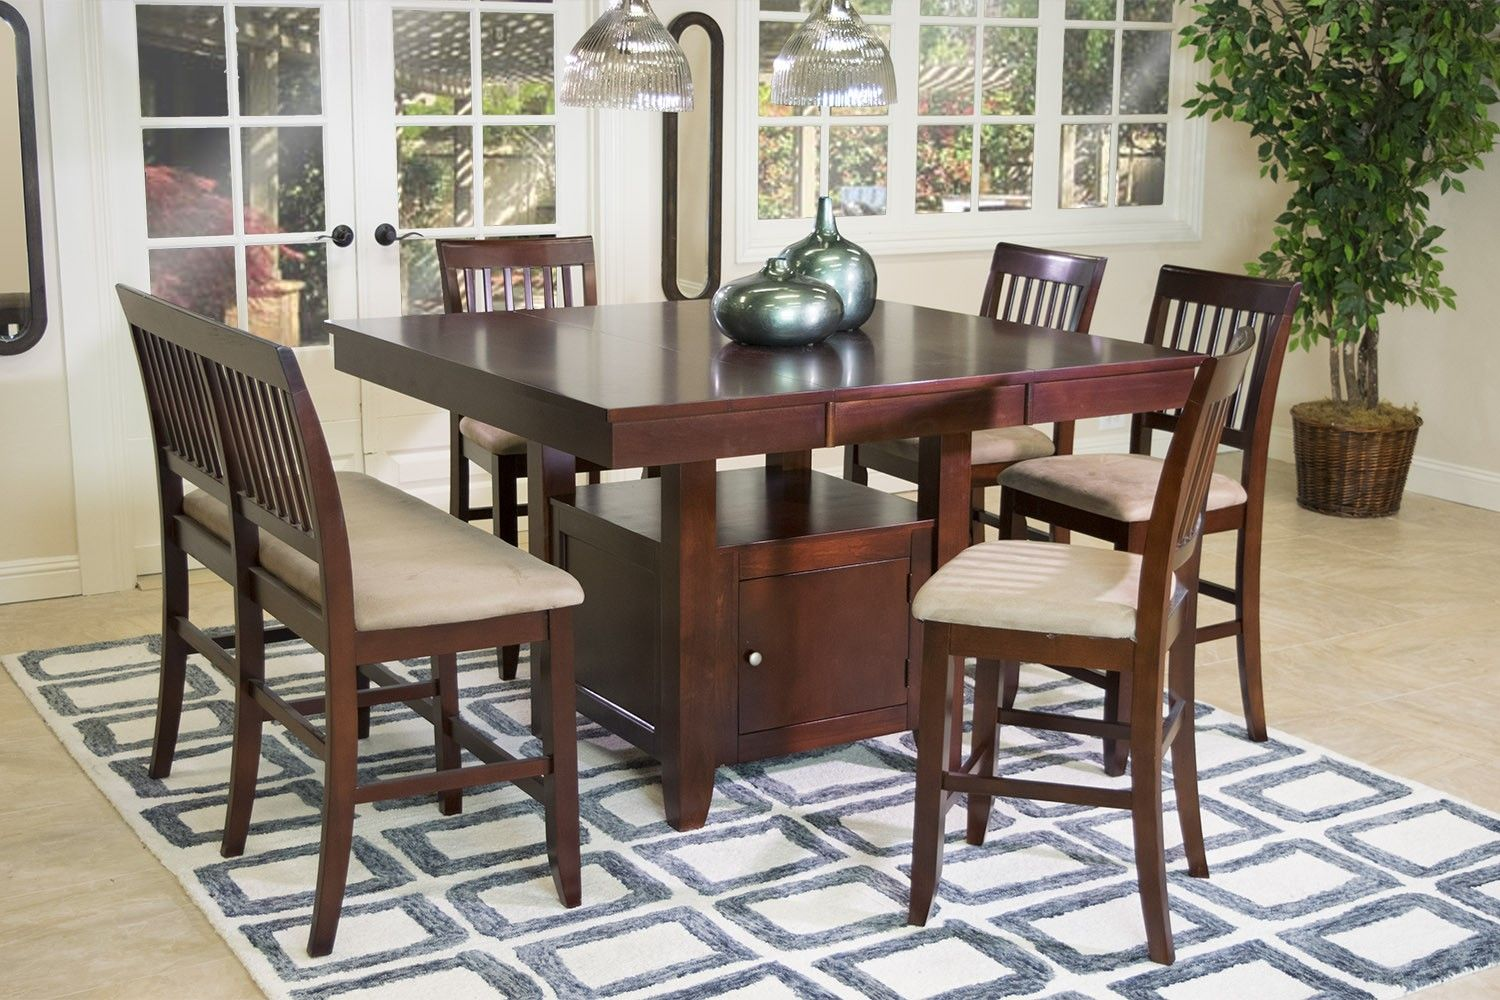 Brendan Counter-Height Dining Room - Dining Room Sets - Shop Rooms | Mor Furniture for Less